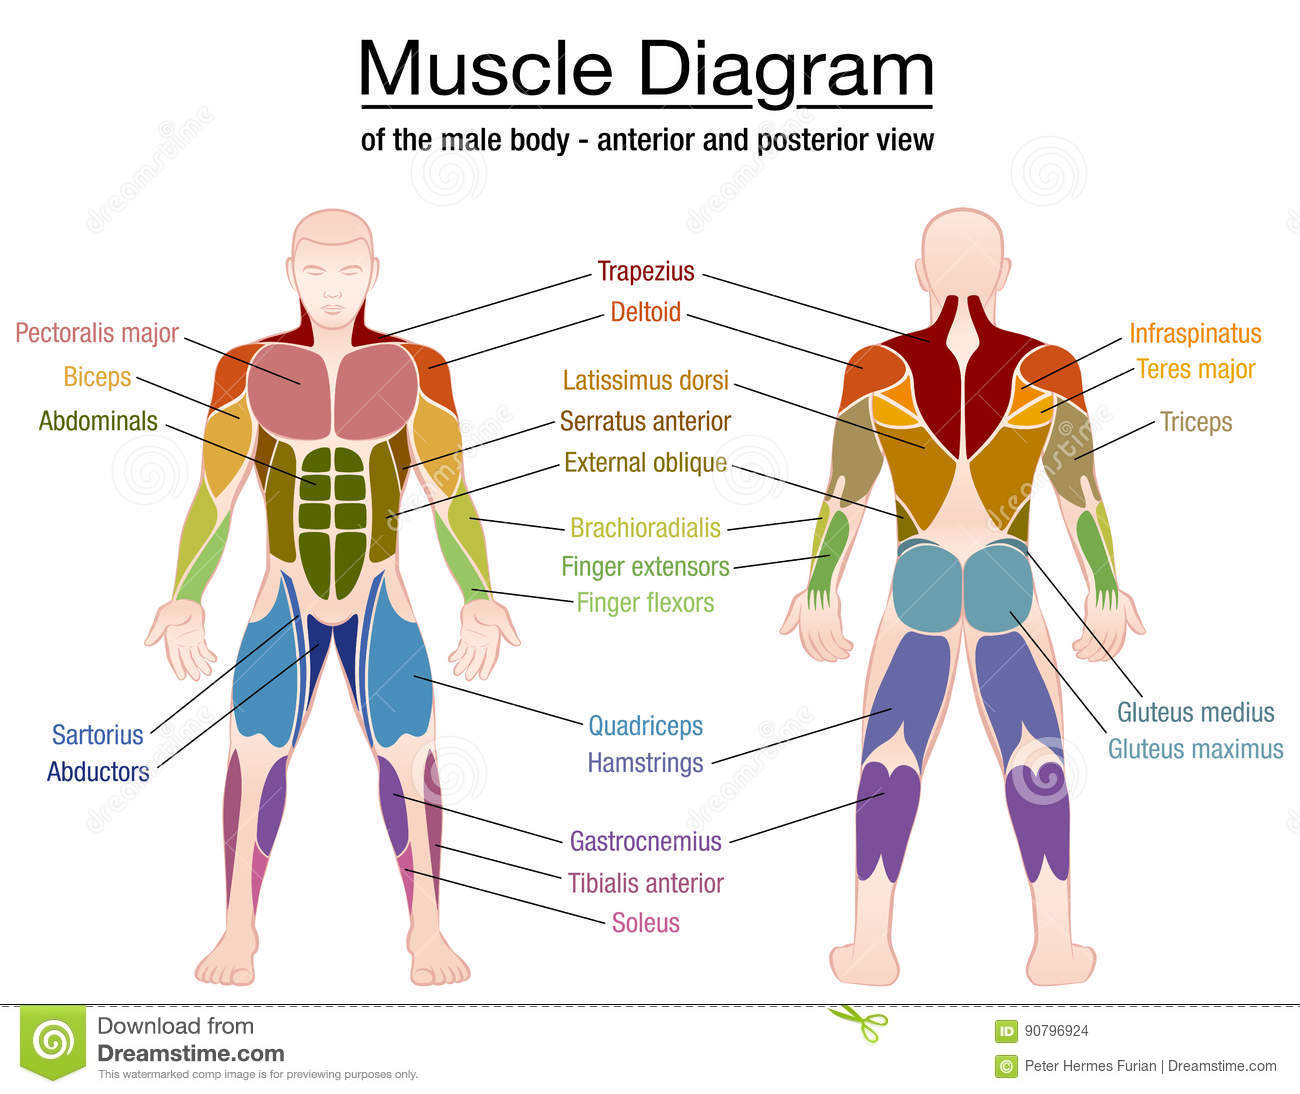 hight resolution of muscle diagram most important muscles of an athletic male body anterior and posterior view labeled vector illustration on white background